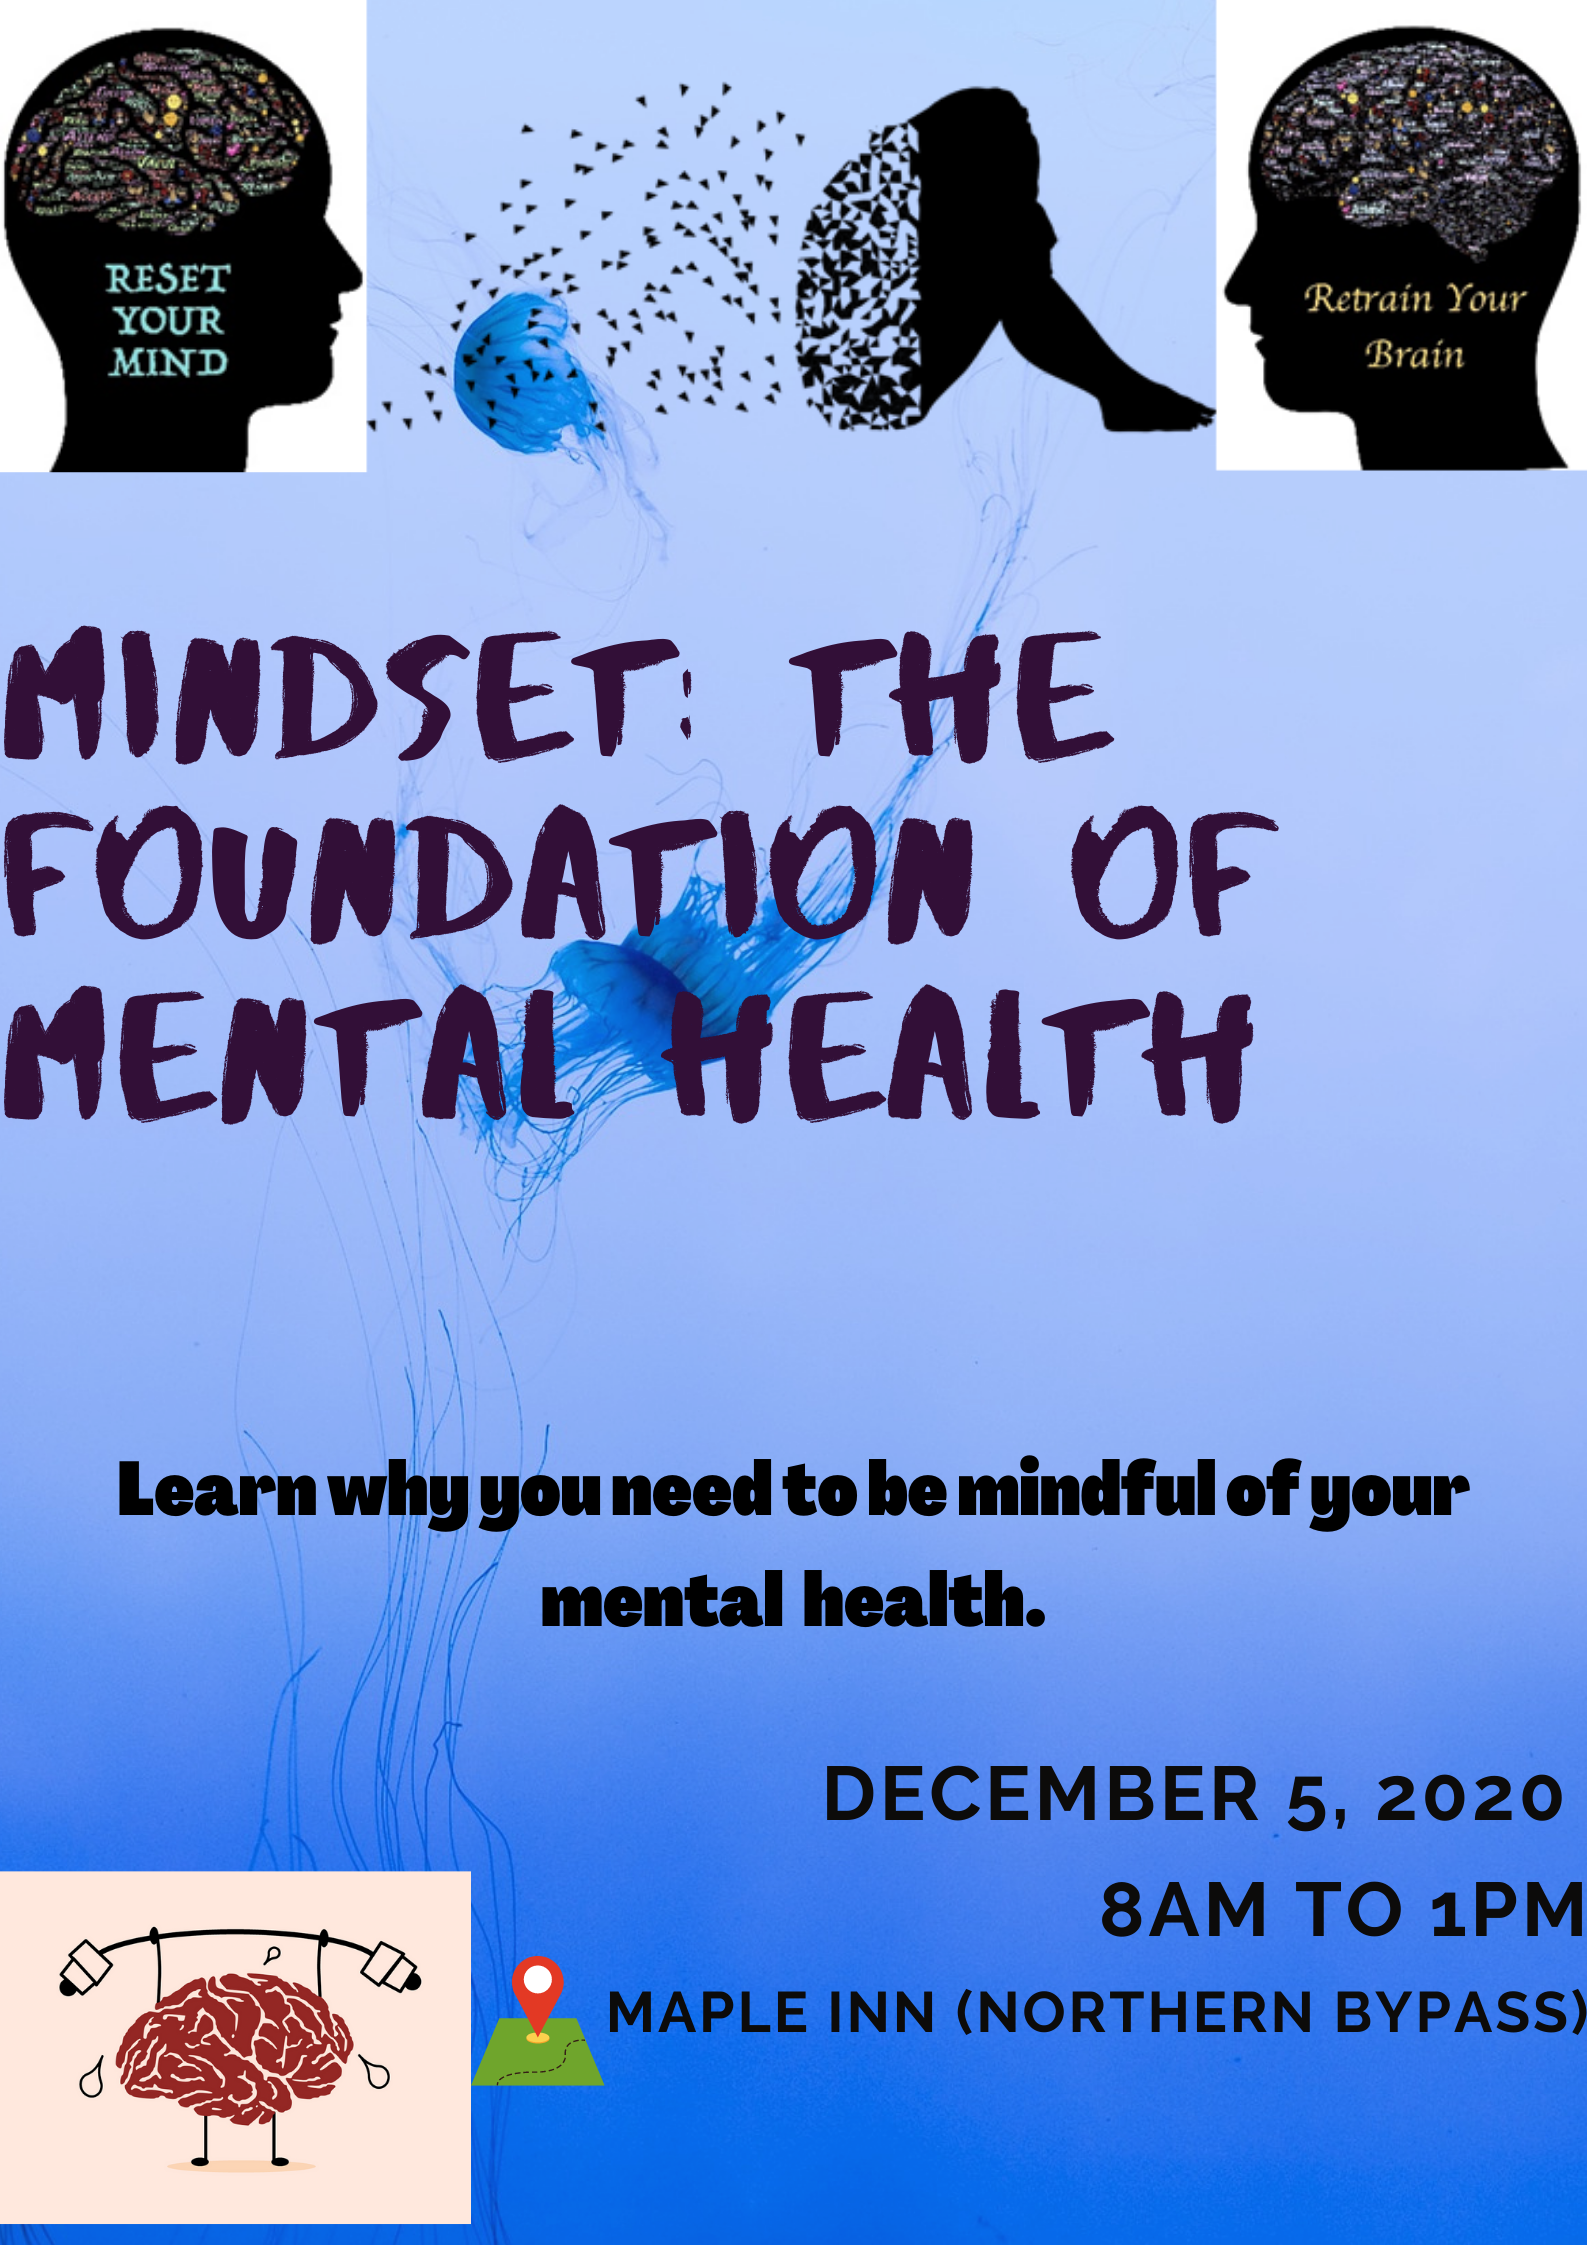 Mindset: The Foundation of Mental Health is a wellness event held at the Maple Inn along the Northern Bypass